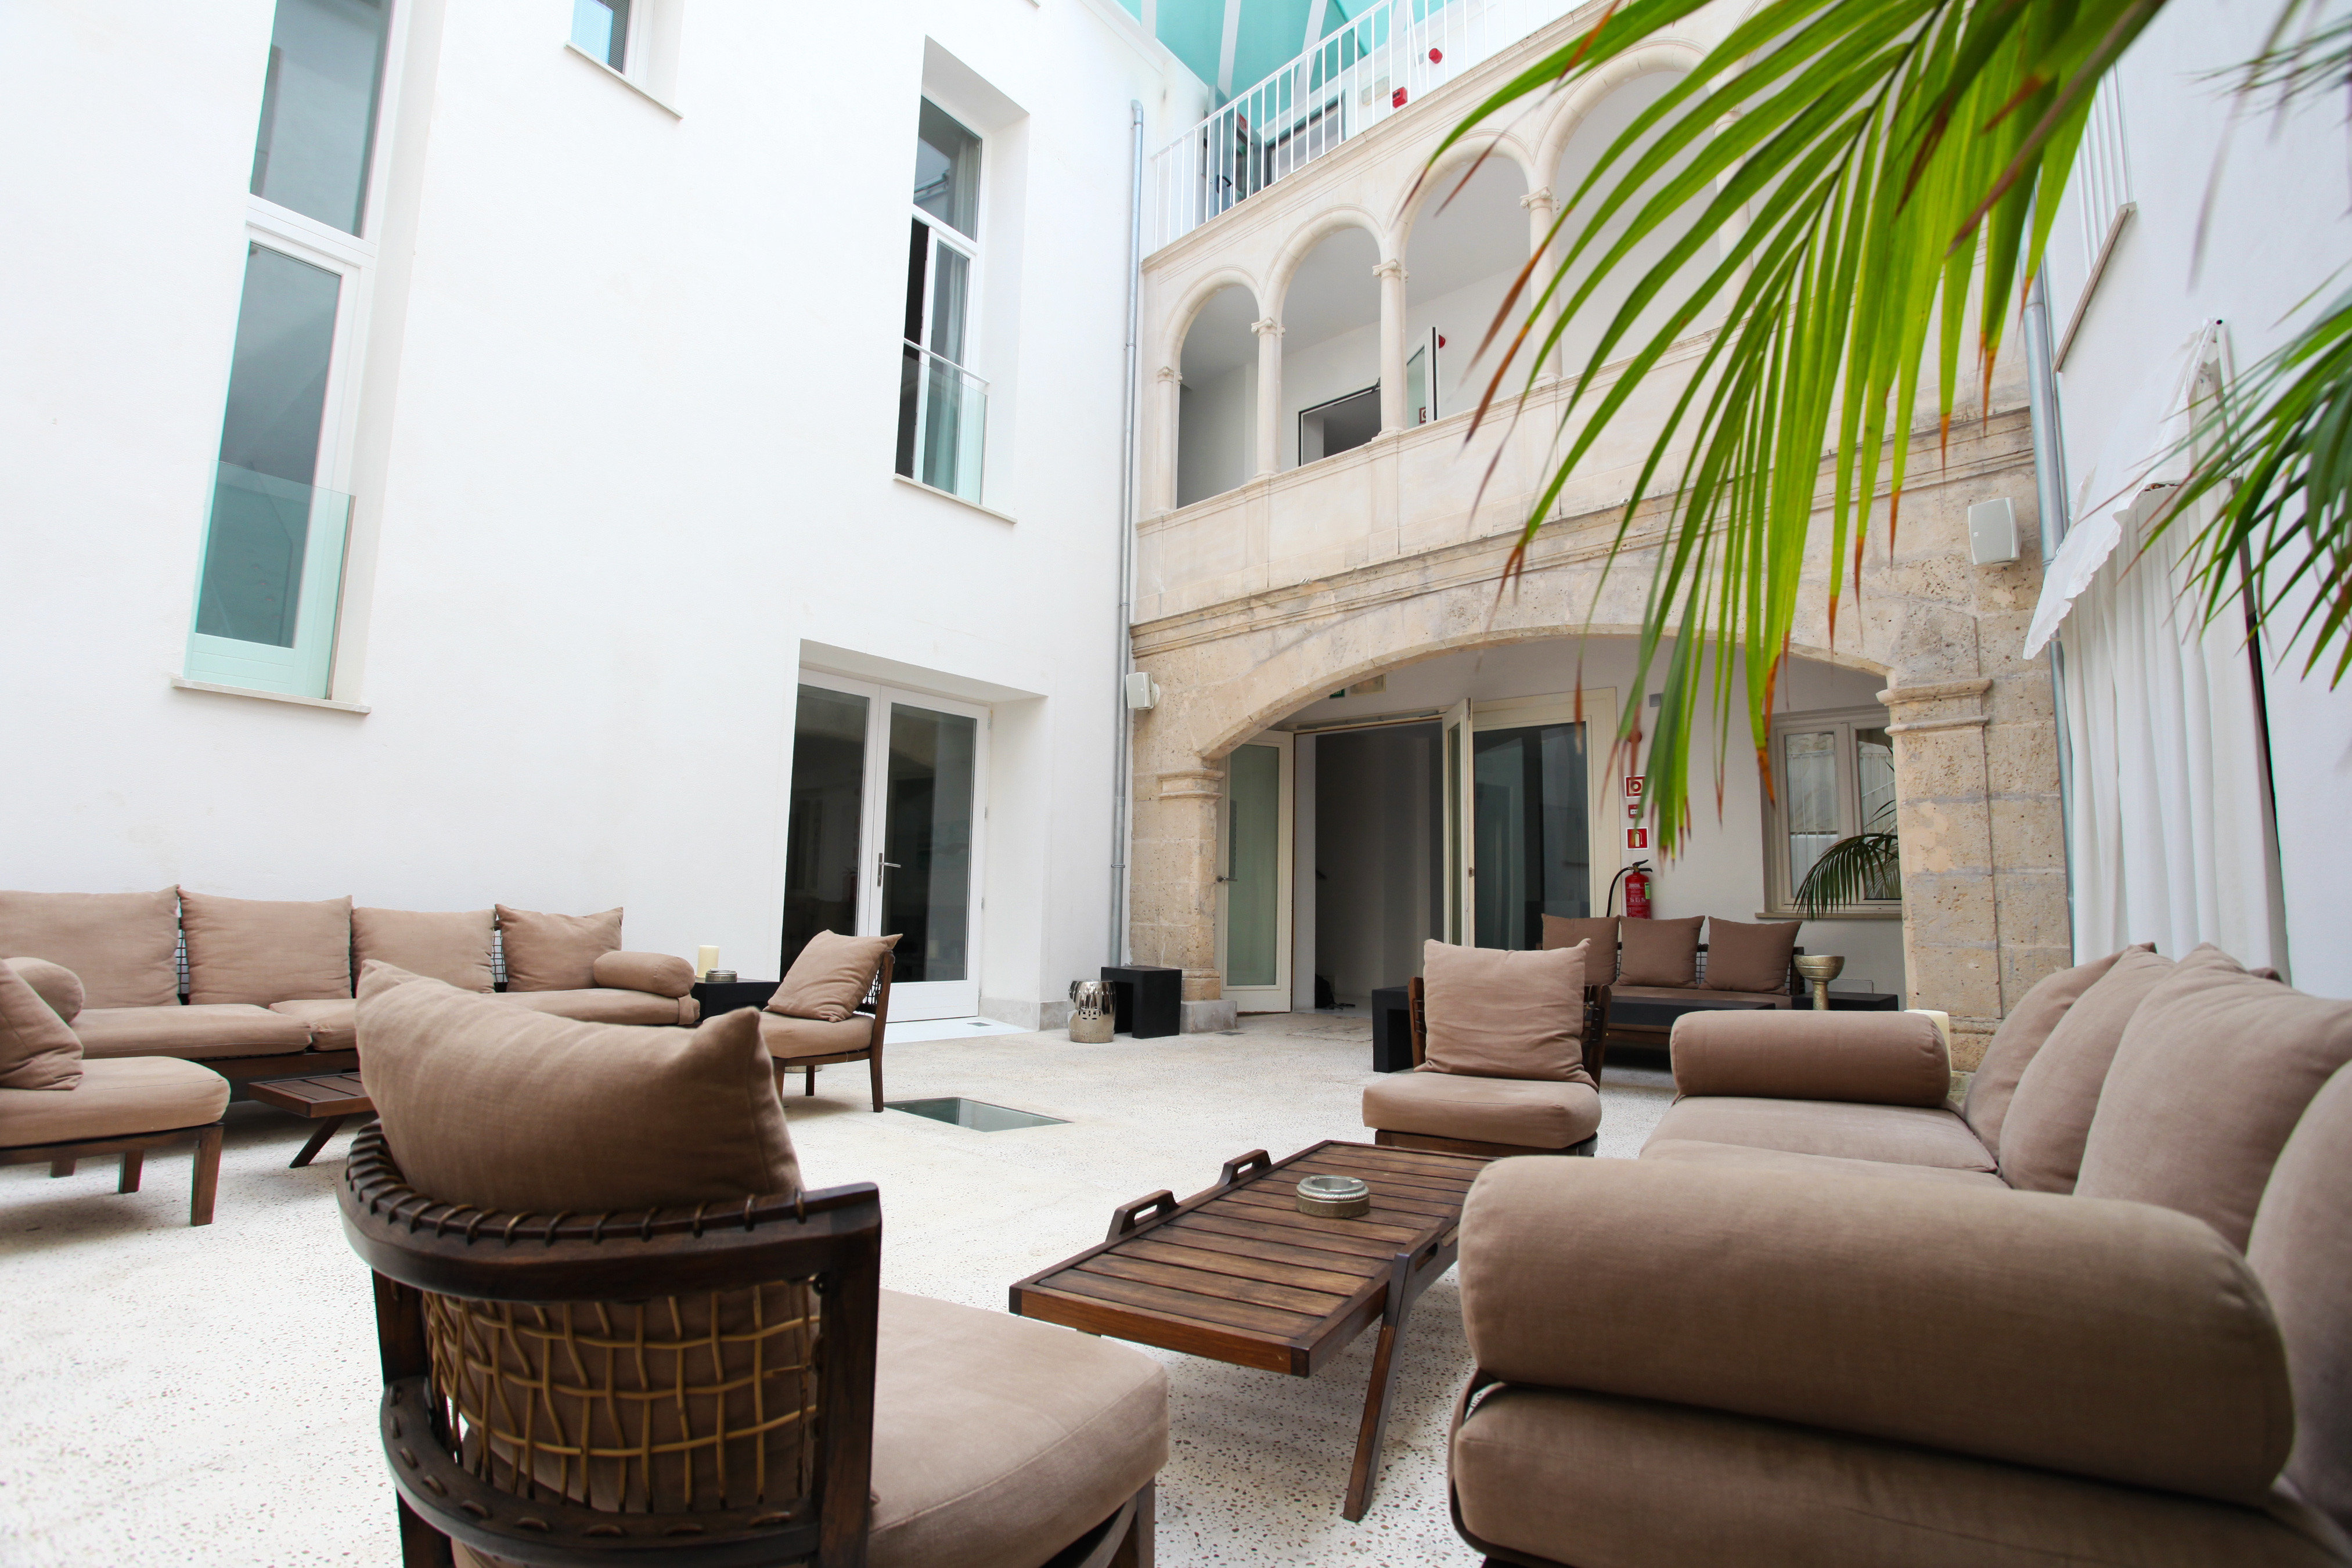 Hip Lounge Luxury Modern sofa property condominium living room building home house Villa cottage mansion Suite Lobby Courtyard leather